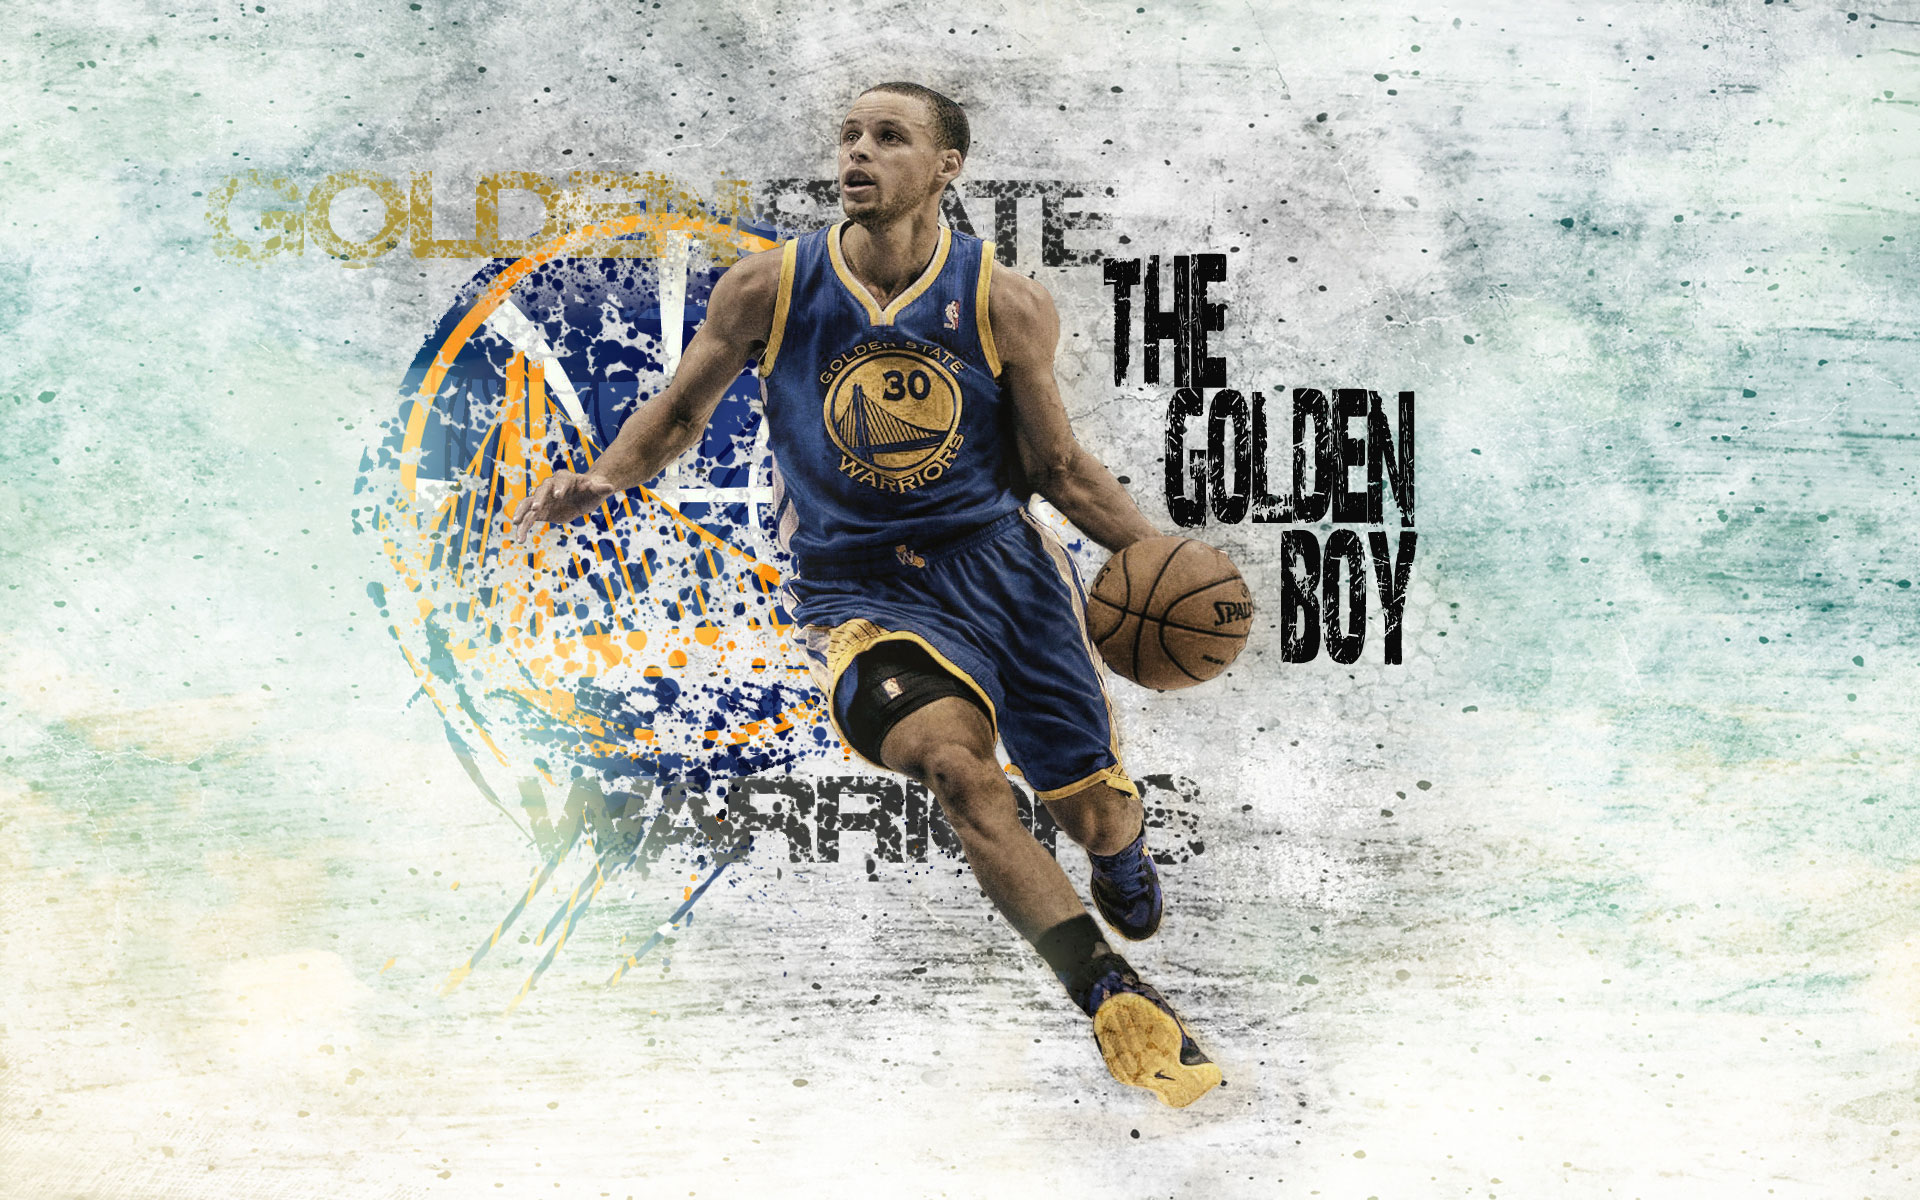 fractal stephen curry splash nba stephen curry splash stephen curry 1920x1200